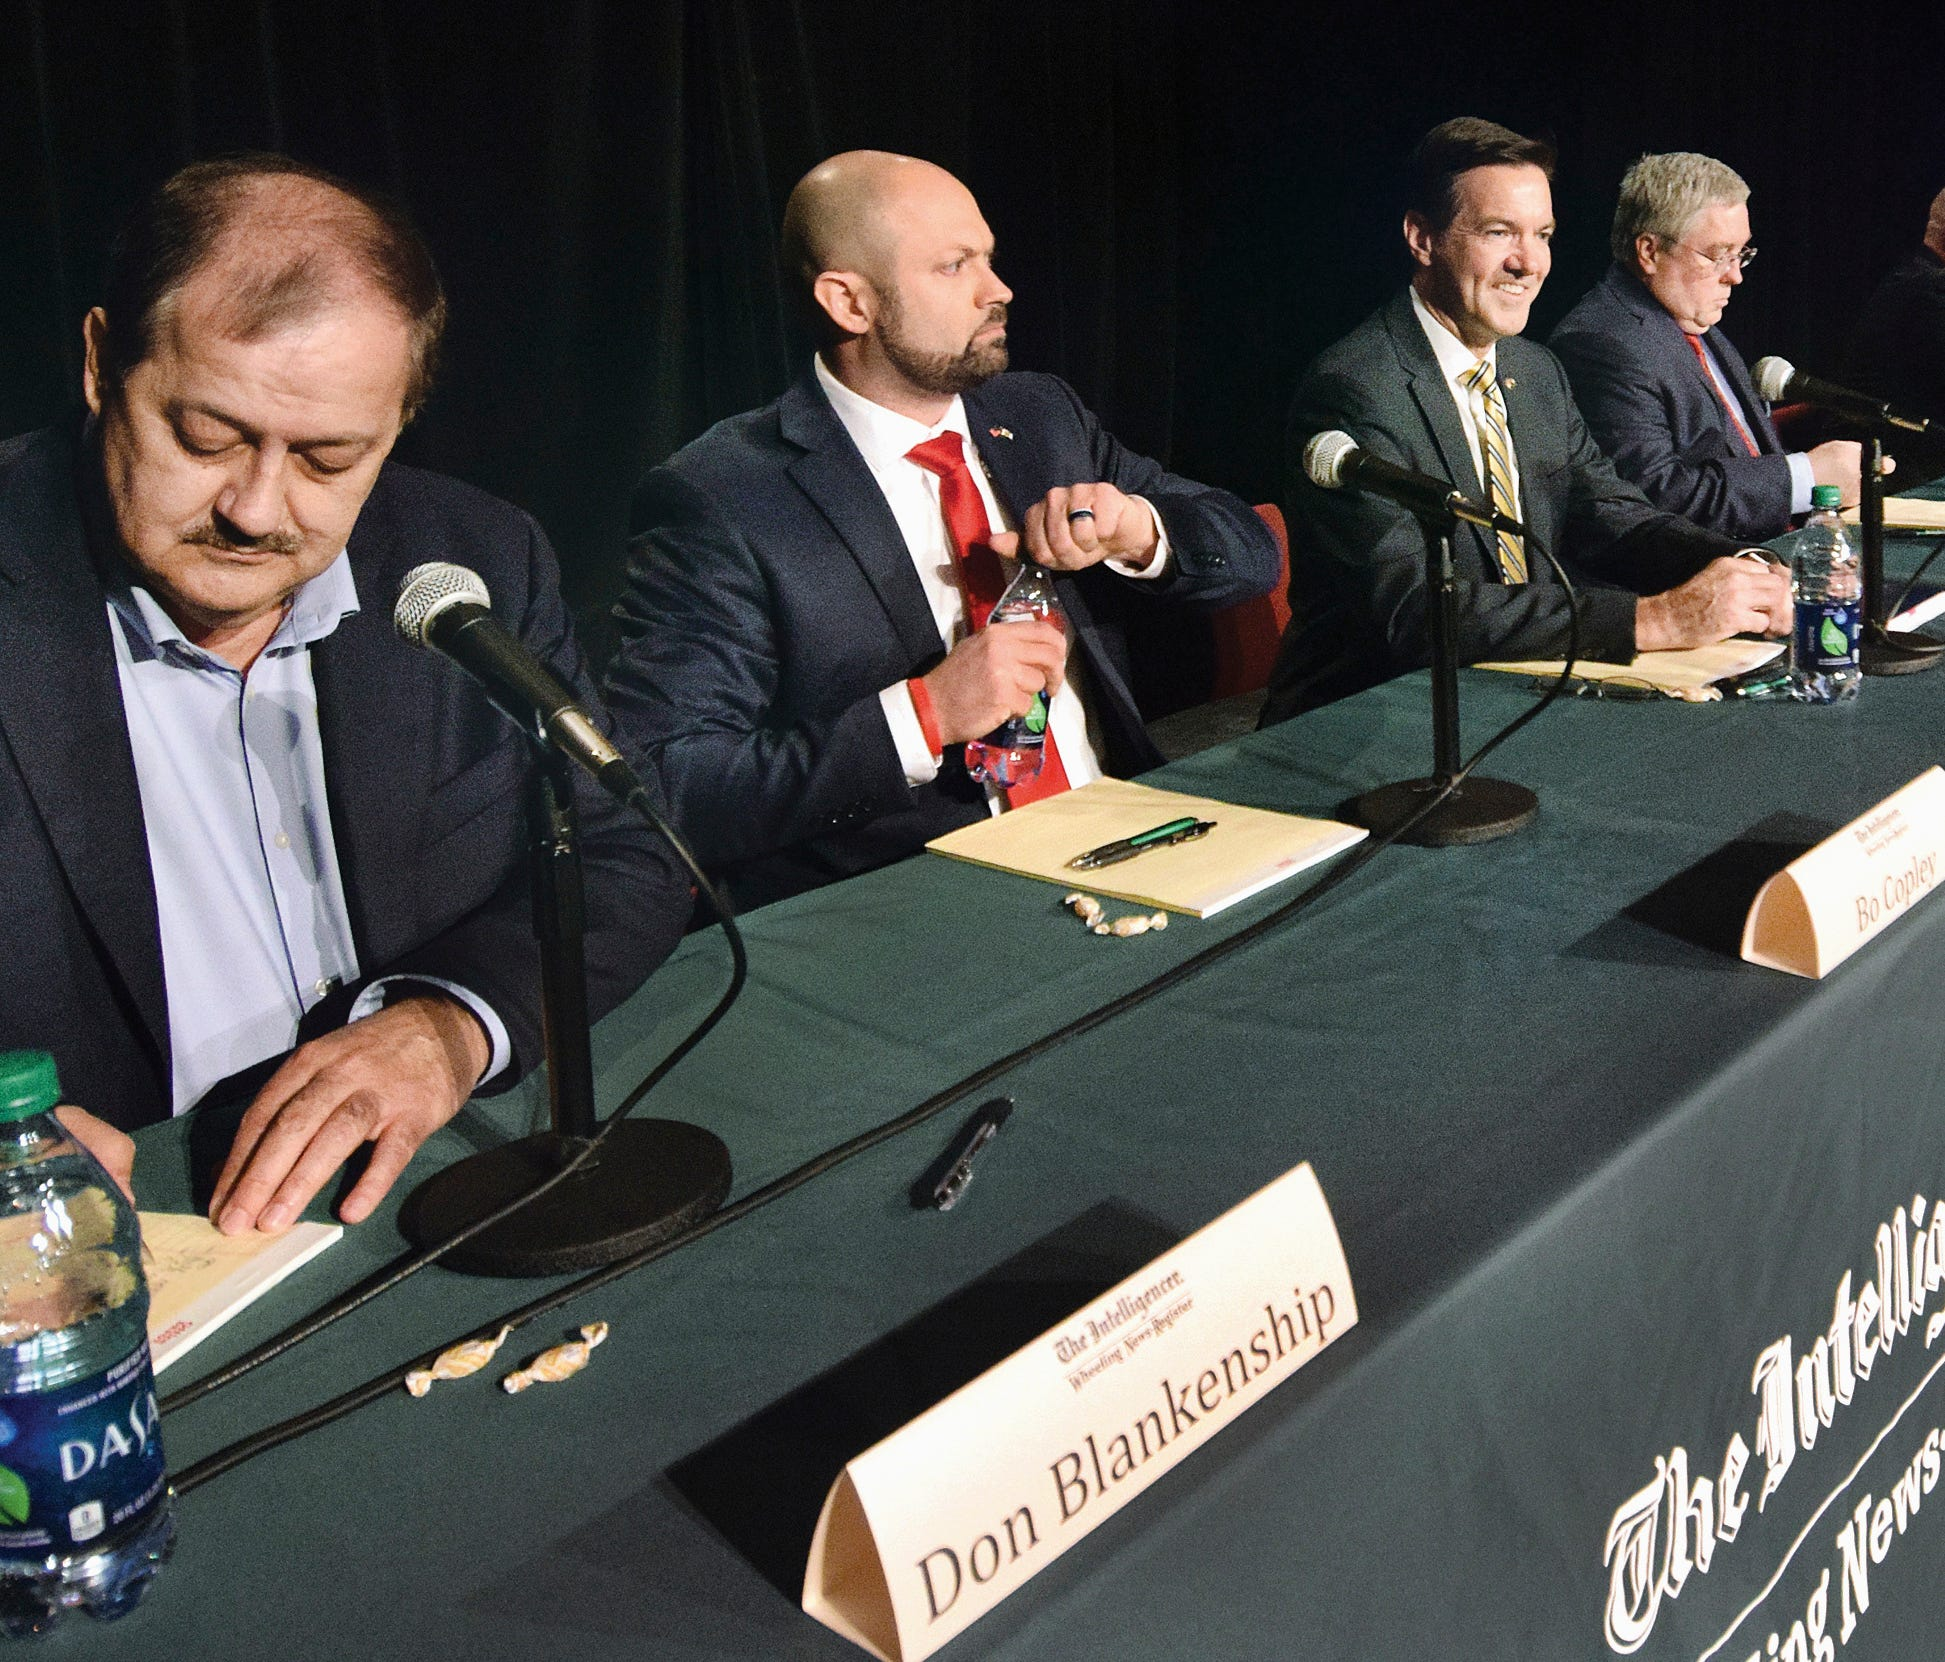 Candidates, from left, Don Blankenship, of Williamson,Bo Copley, of Delbarton; U.S. Rep. Evan Jenkins, R-W.Va., of Huntington, West Virginia Attorney General Patrick Morrisey, of Charles Town, Jack Newbrough, of Weirton, and Tom Willis, of Martinsbu